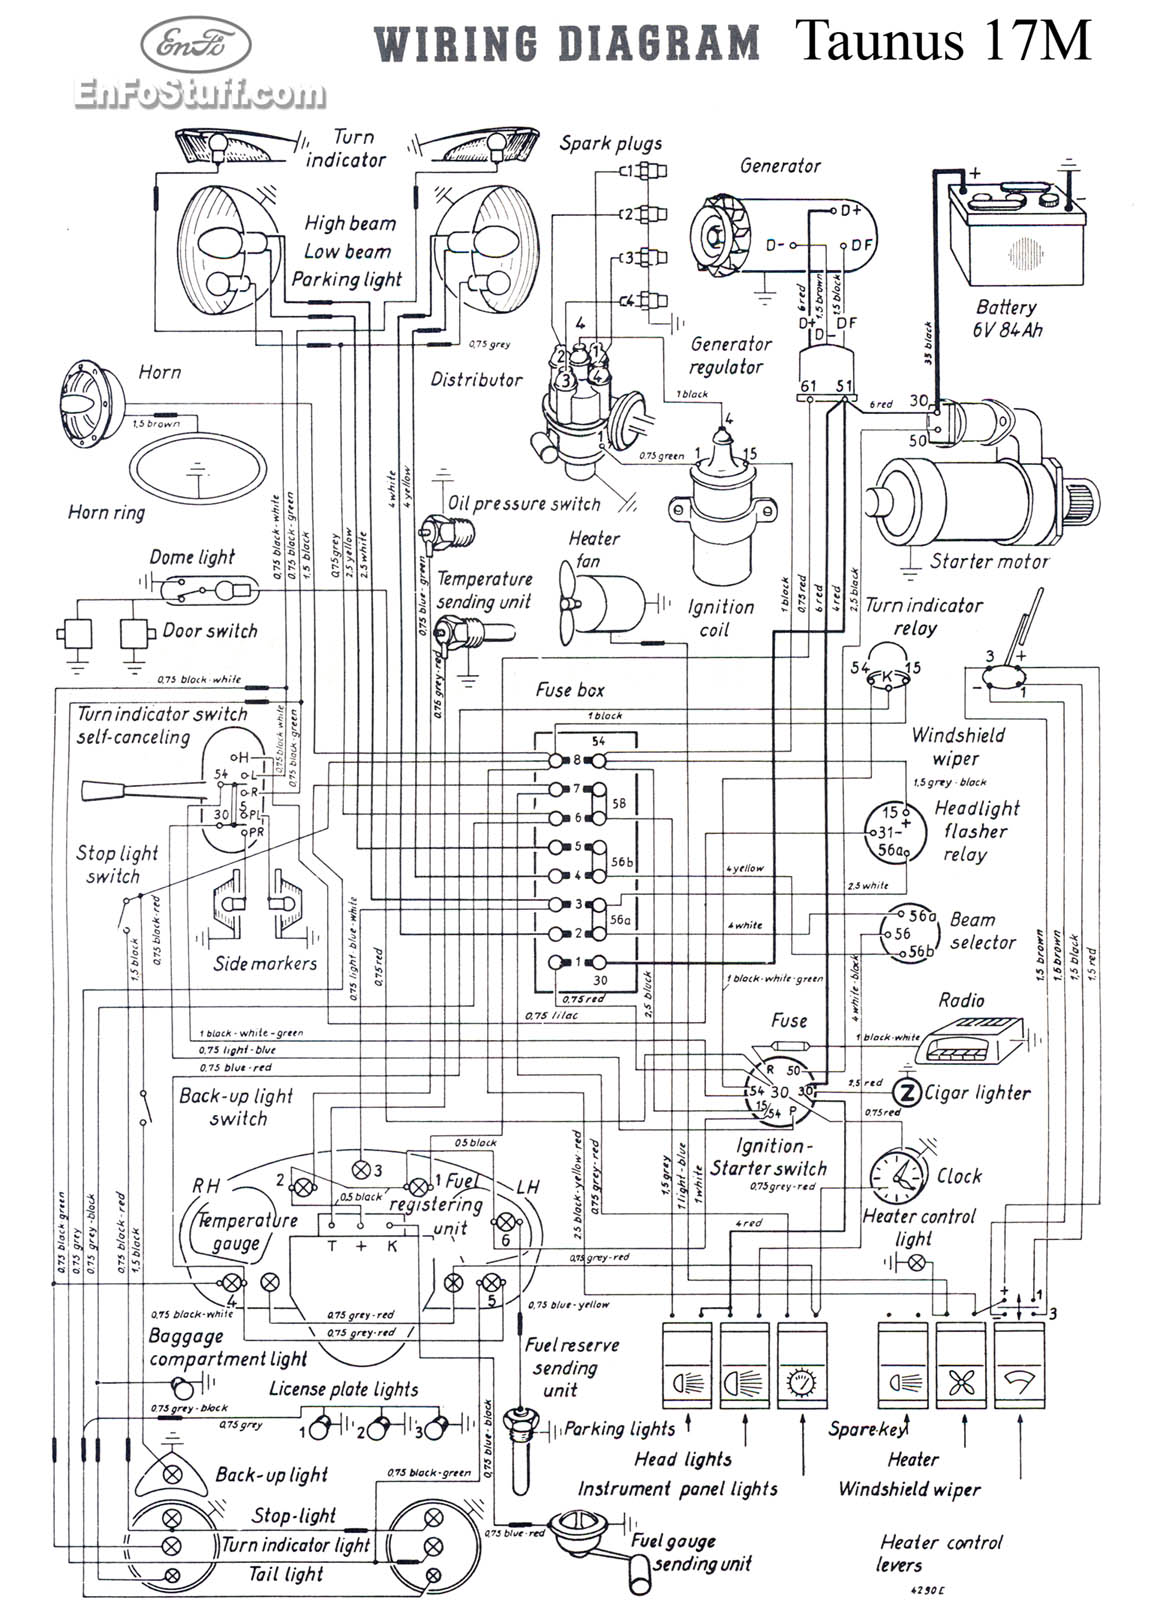 1974 Vw Super Beetle Engine Diagram, 1974, Get Free Image